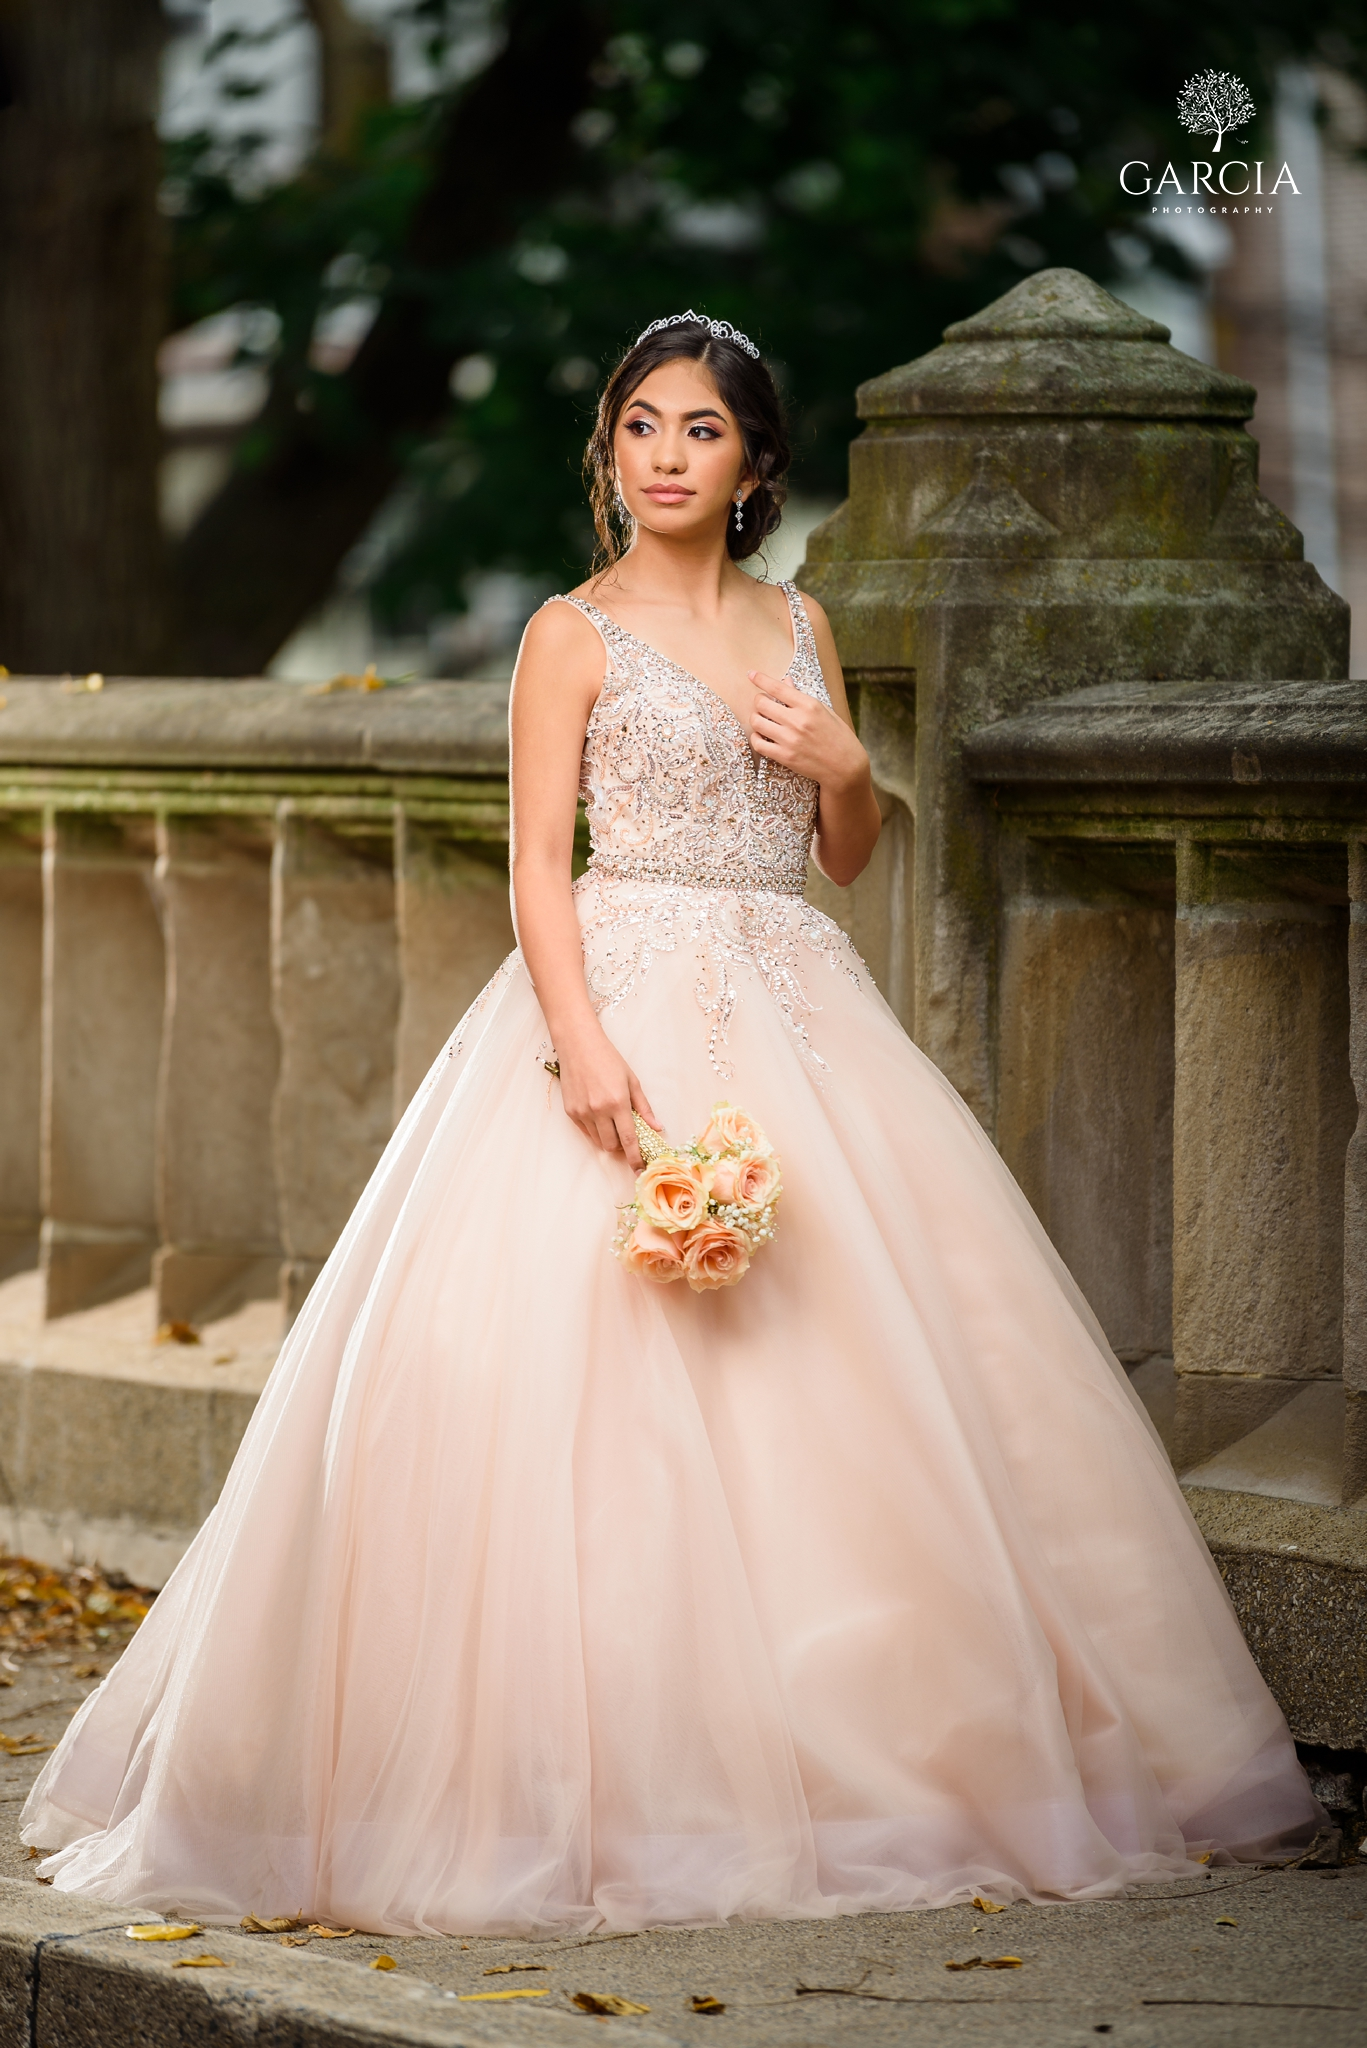 Nicole-Quince-Session-Garcia-Photography-4749.jpg